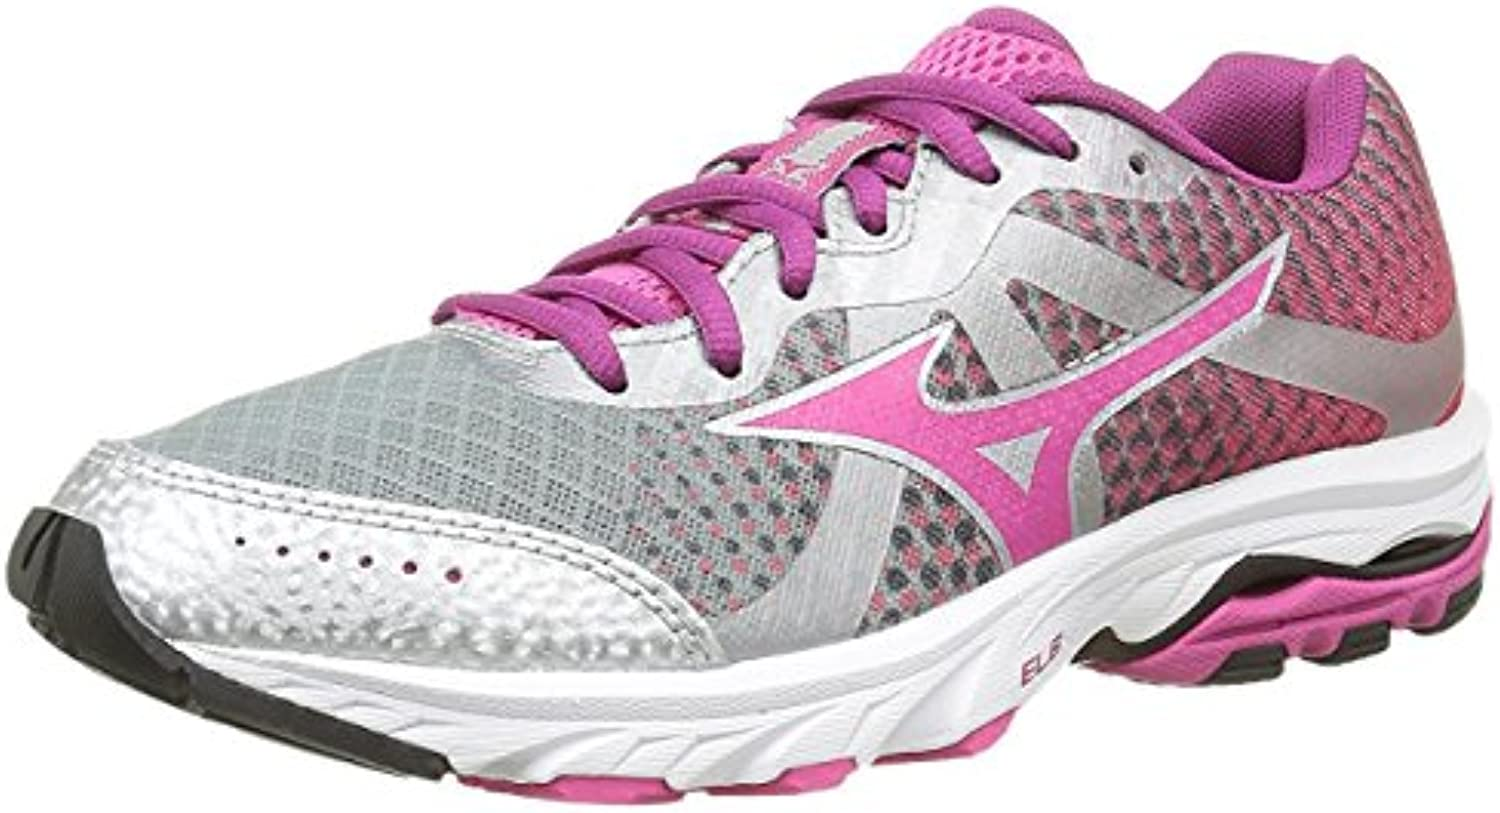 Mizuno Zapatillas de Running Wave Elevation Wos Morado/Plata EU 40.5 (US 9.5)